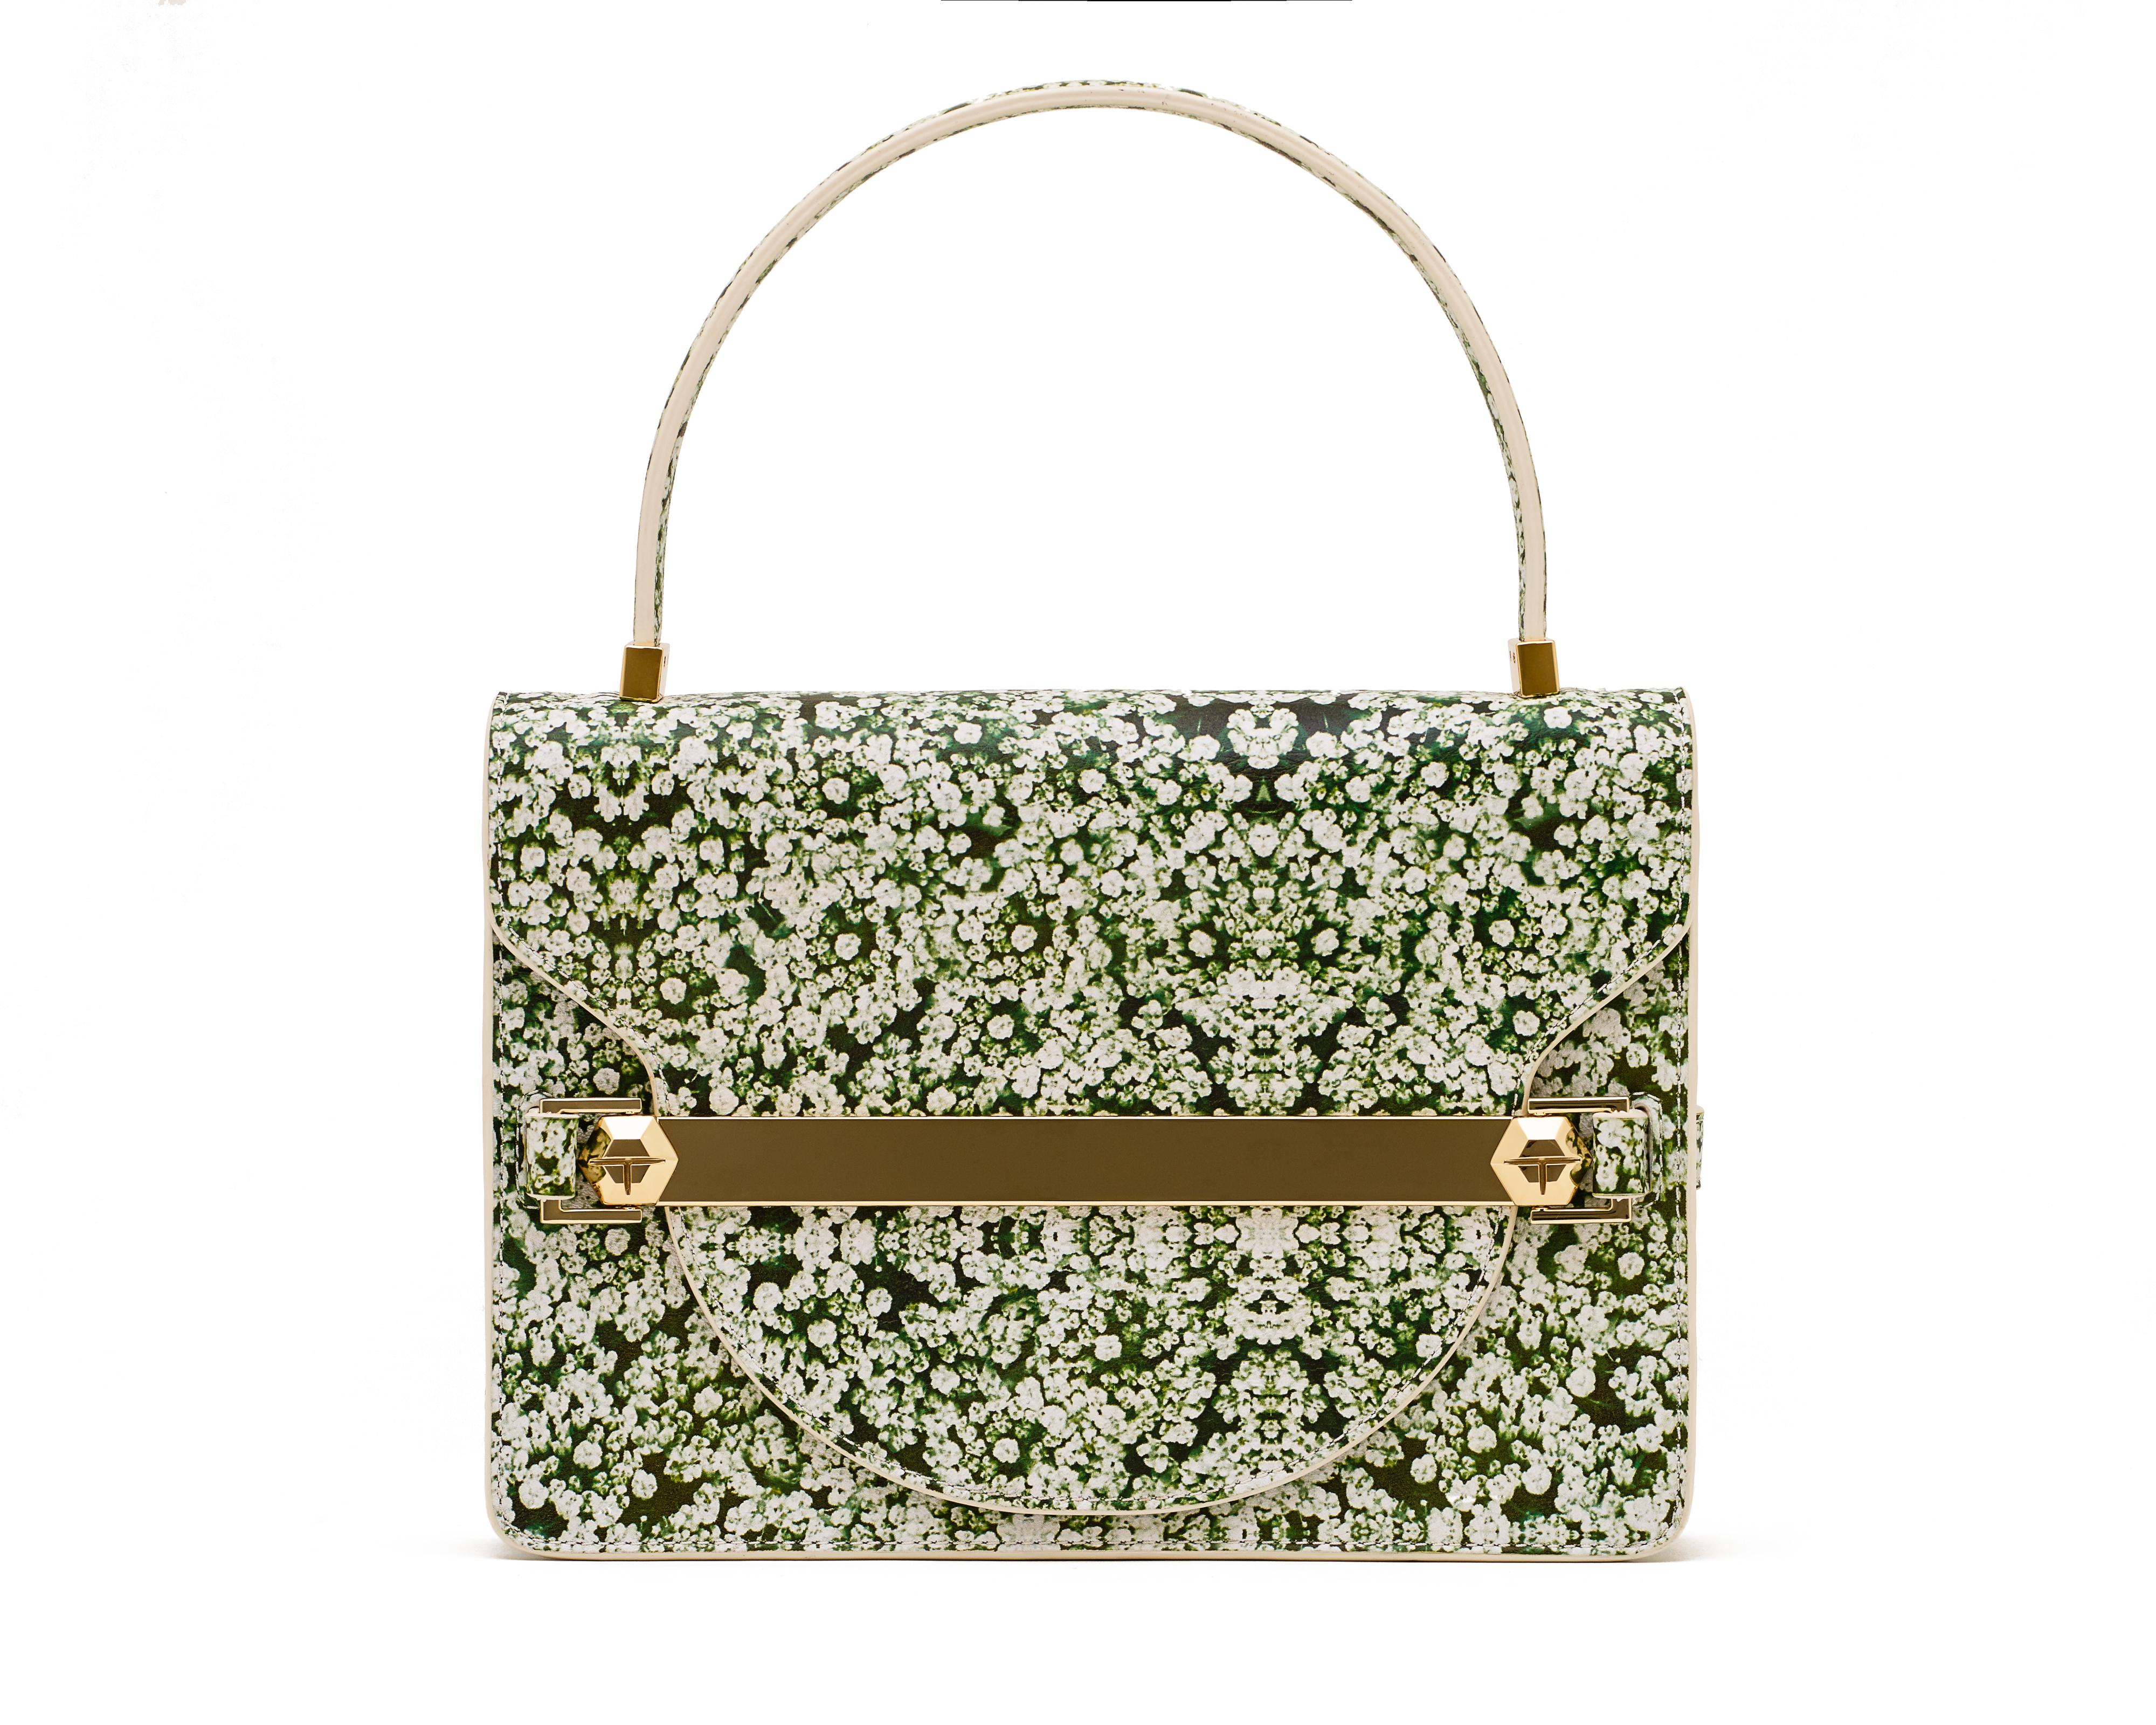 TB Maquis Shoulder Bag in Queen Anne's Lace